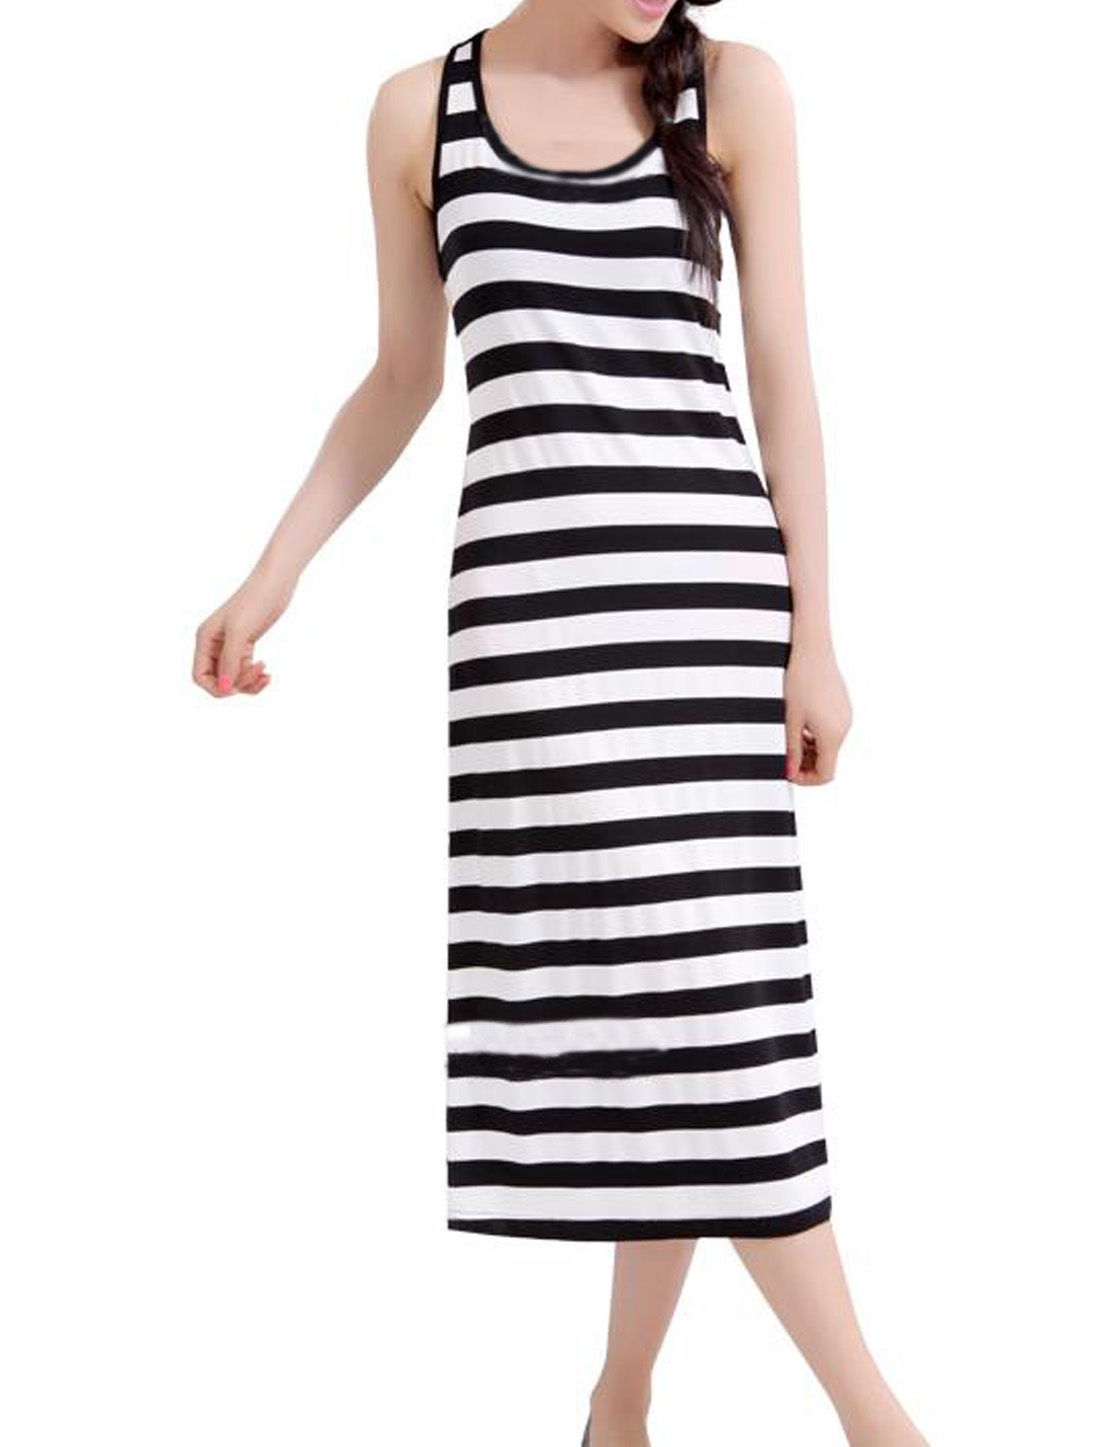 S White Black Bar Printed Racer Back Tank Dress for Ladies